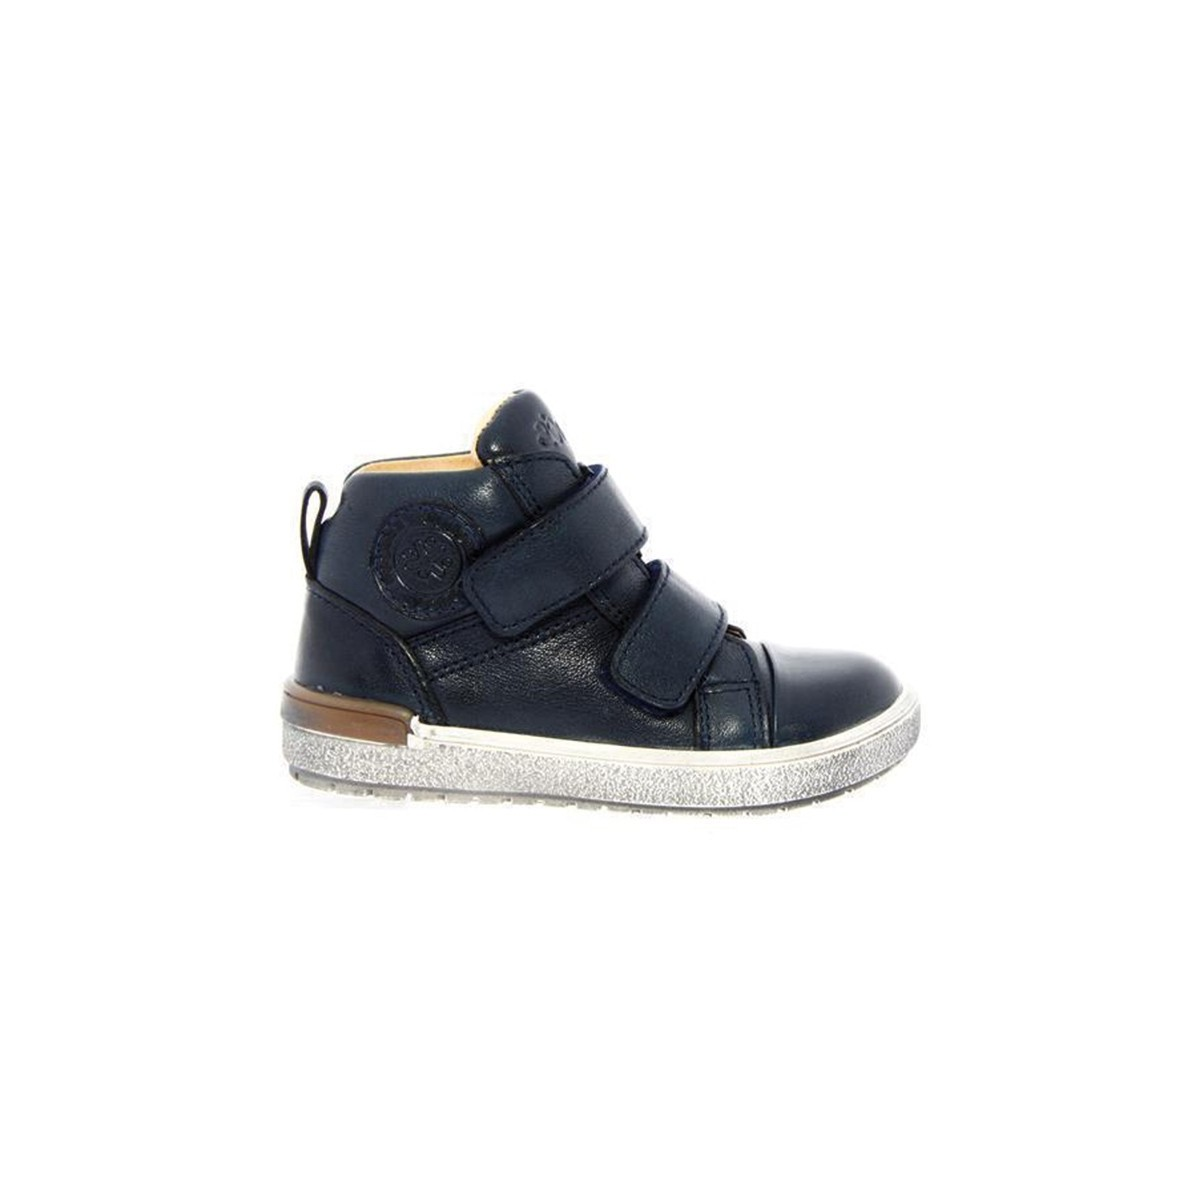 Chaussures Acebos montante 3 velcros cuir marine